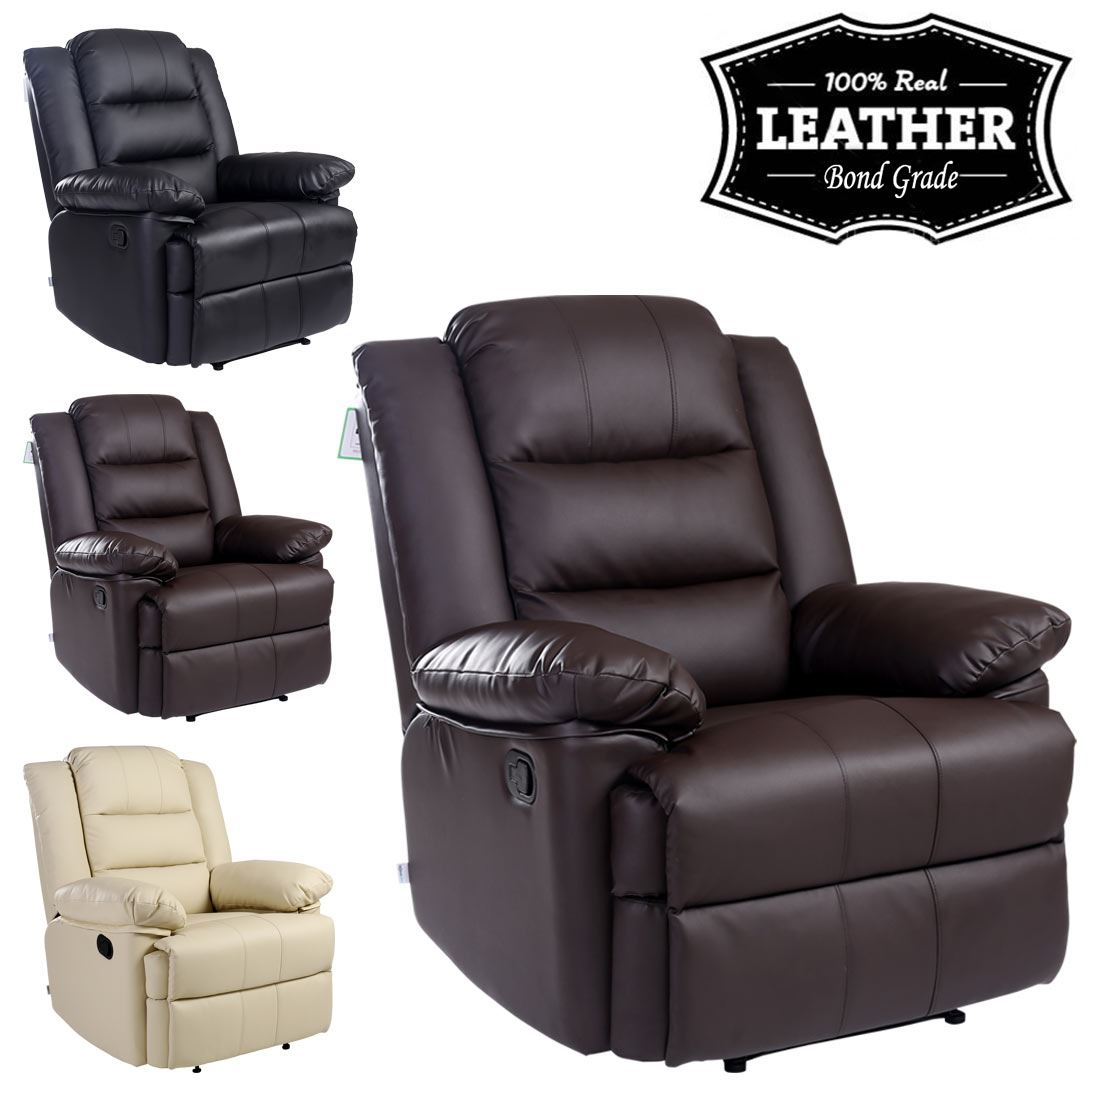 recliner gaming chair wingback leather loxley armchair sofa home lounge